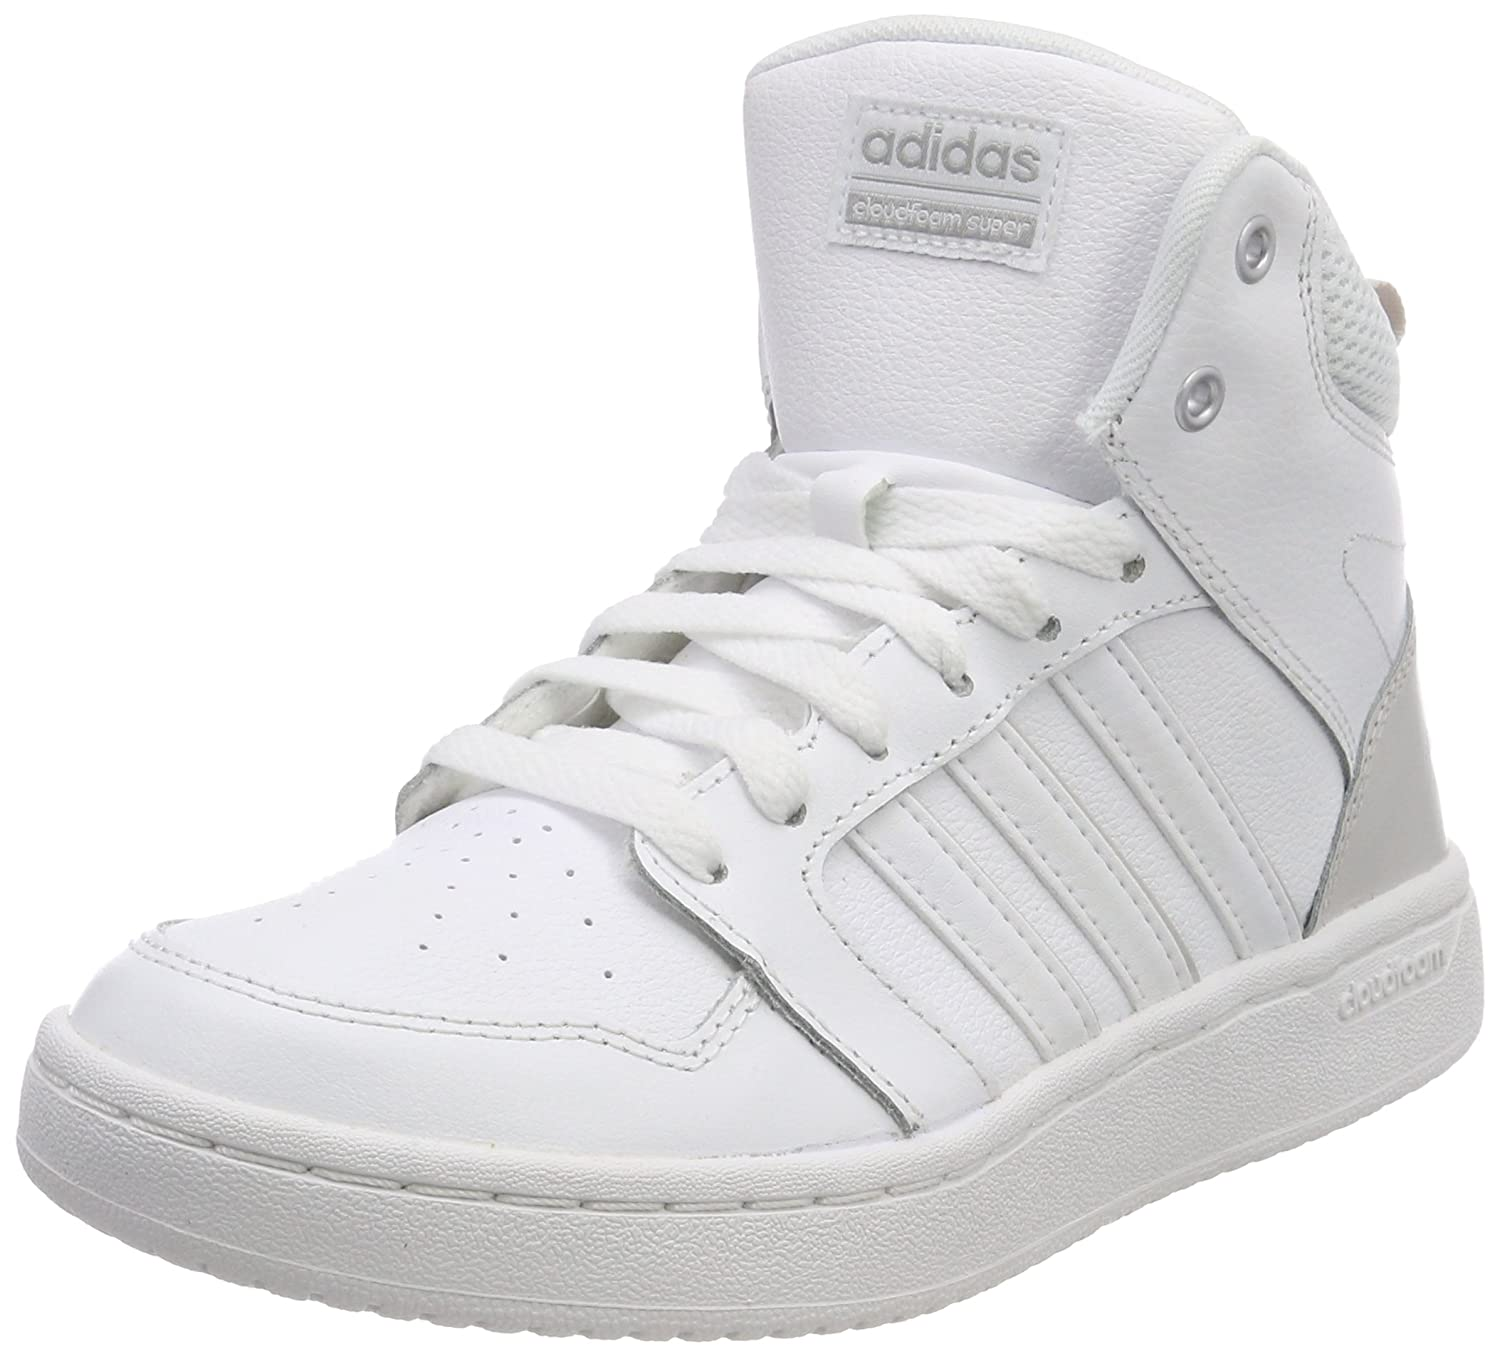 on sale 3c409 9c451 adidas Women s s Cloudfoam Super Hoops Mid Schuh Basketball Shoes White  Ftwwht Greone 5 UK  Amazon.co.uk  Shoes   Bags